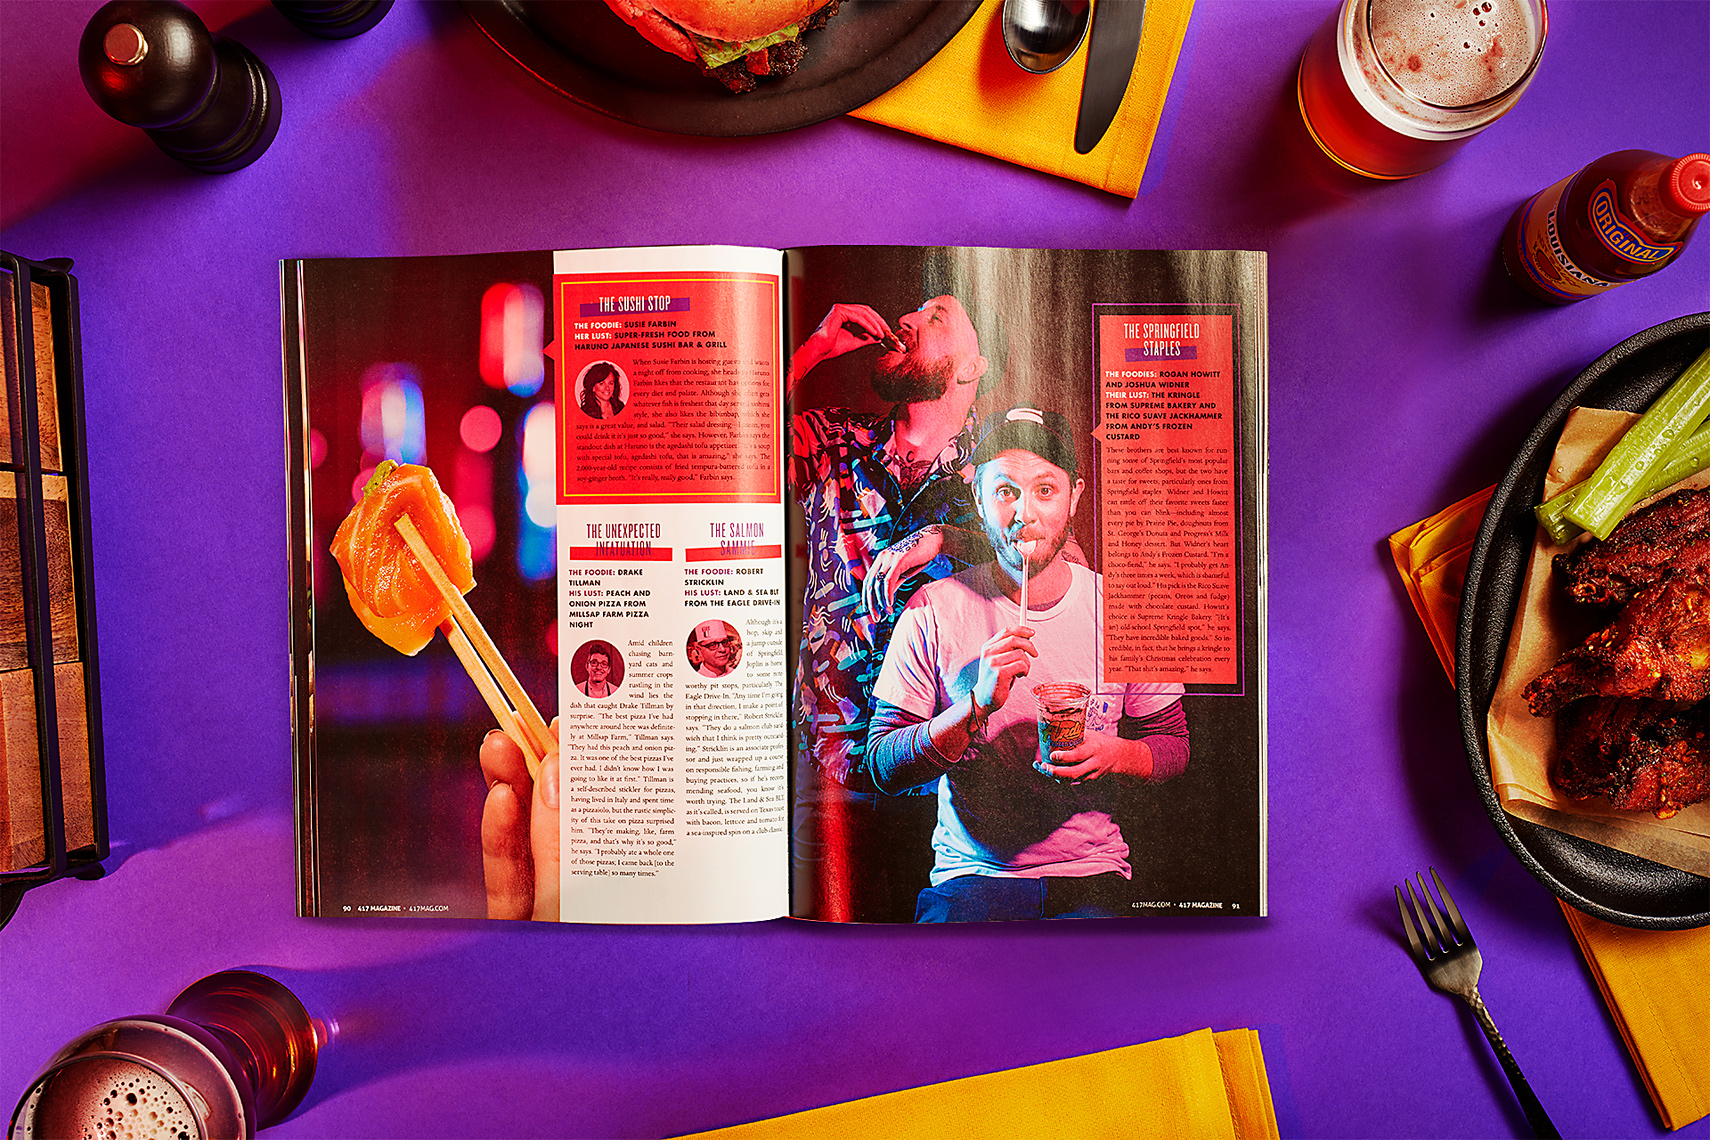 "WHAT FOODIES EAT - The best part of working with 417 Mag was their ability to sign off on getting weird and letting us do what we do best - make stunning work. For the ""What Foodies Eat"" issue, we focused on the late night nature of the hospitality industry, a hotbed for foodie culture. Using neon light and personality driven photography, we created a story within a story to highlight the 417-land creative foodie culture."